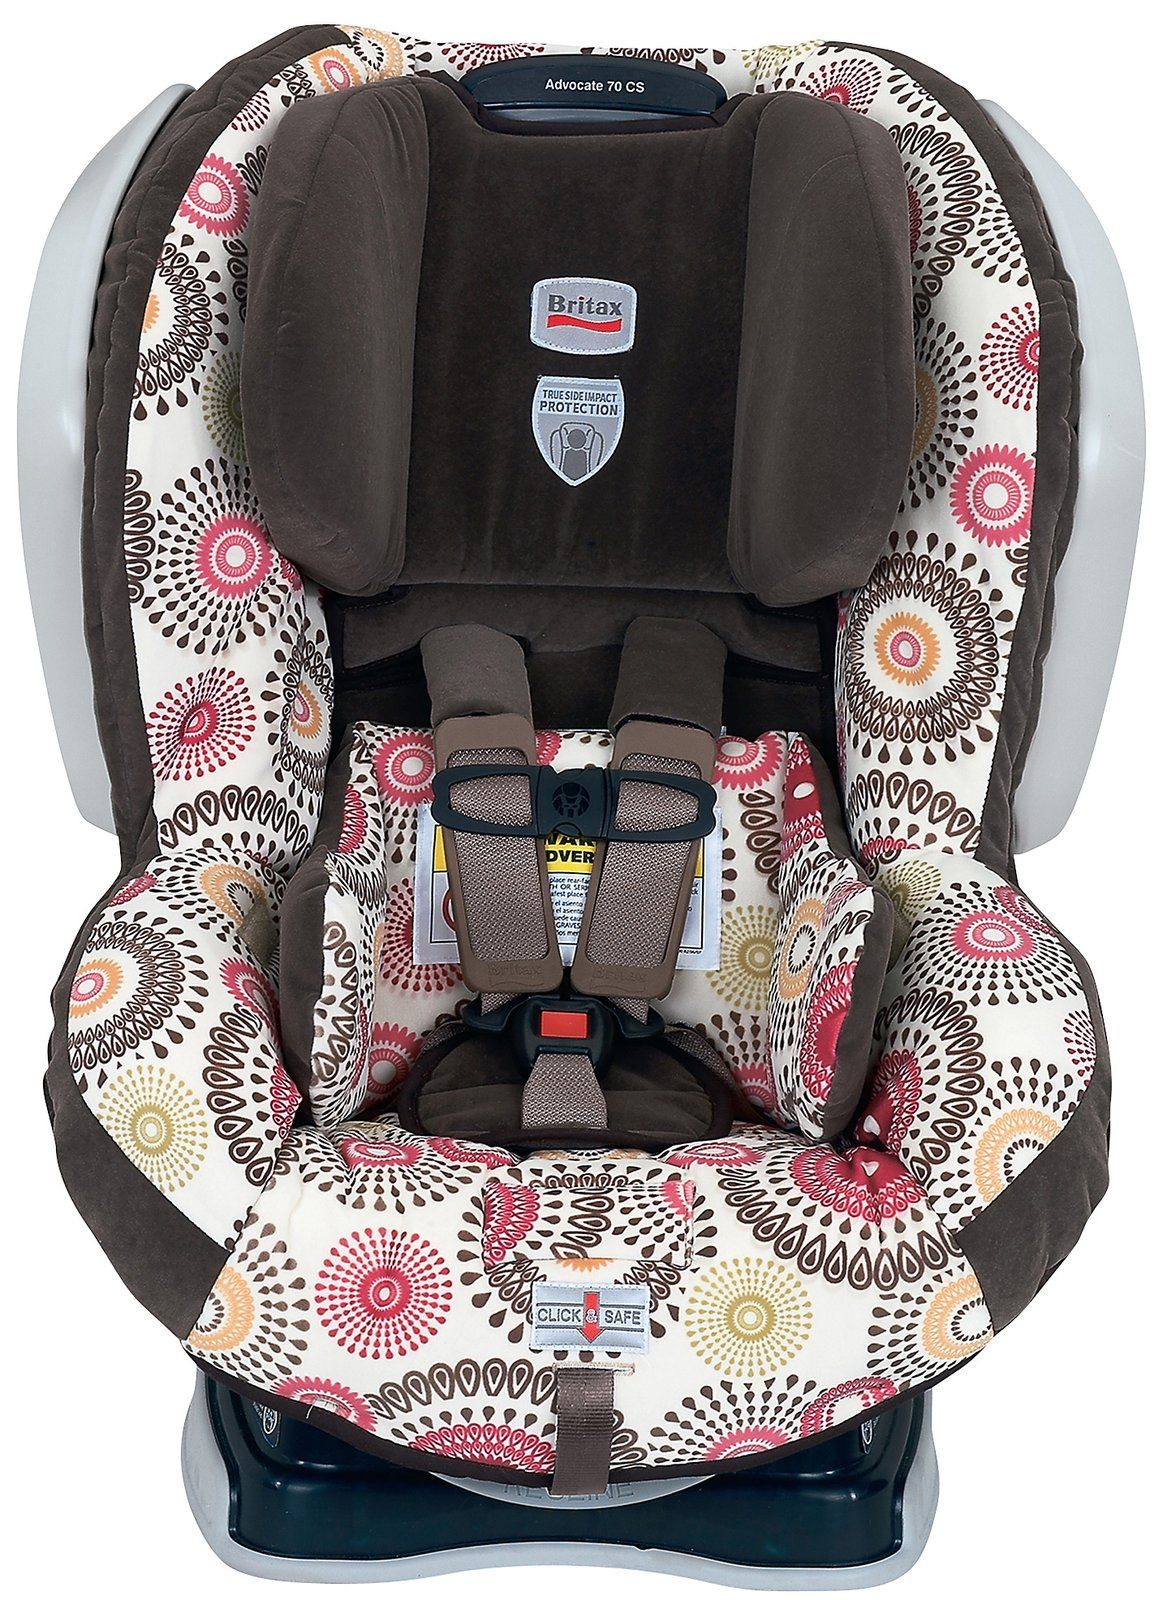 Is It Sad That I Drool Over Car Seats Now Lol Advocate 70 CS Convertible Seat